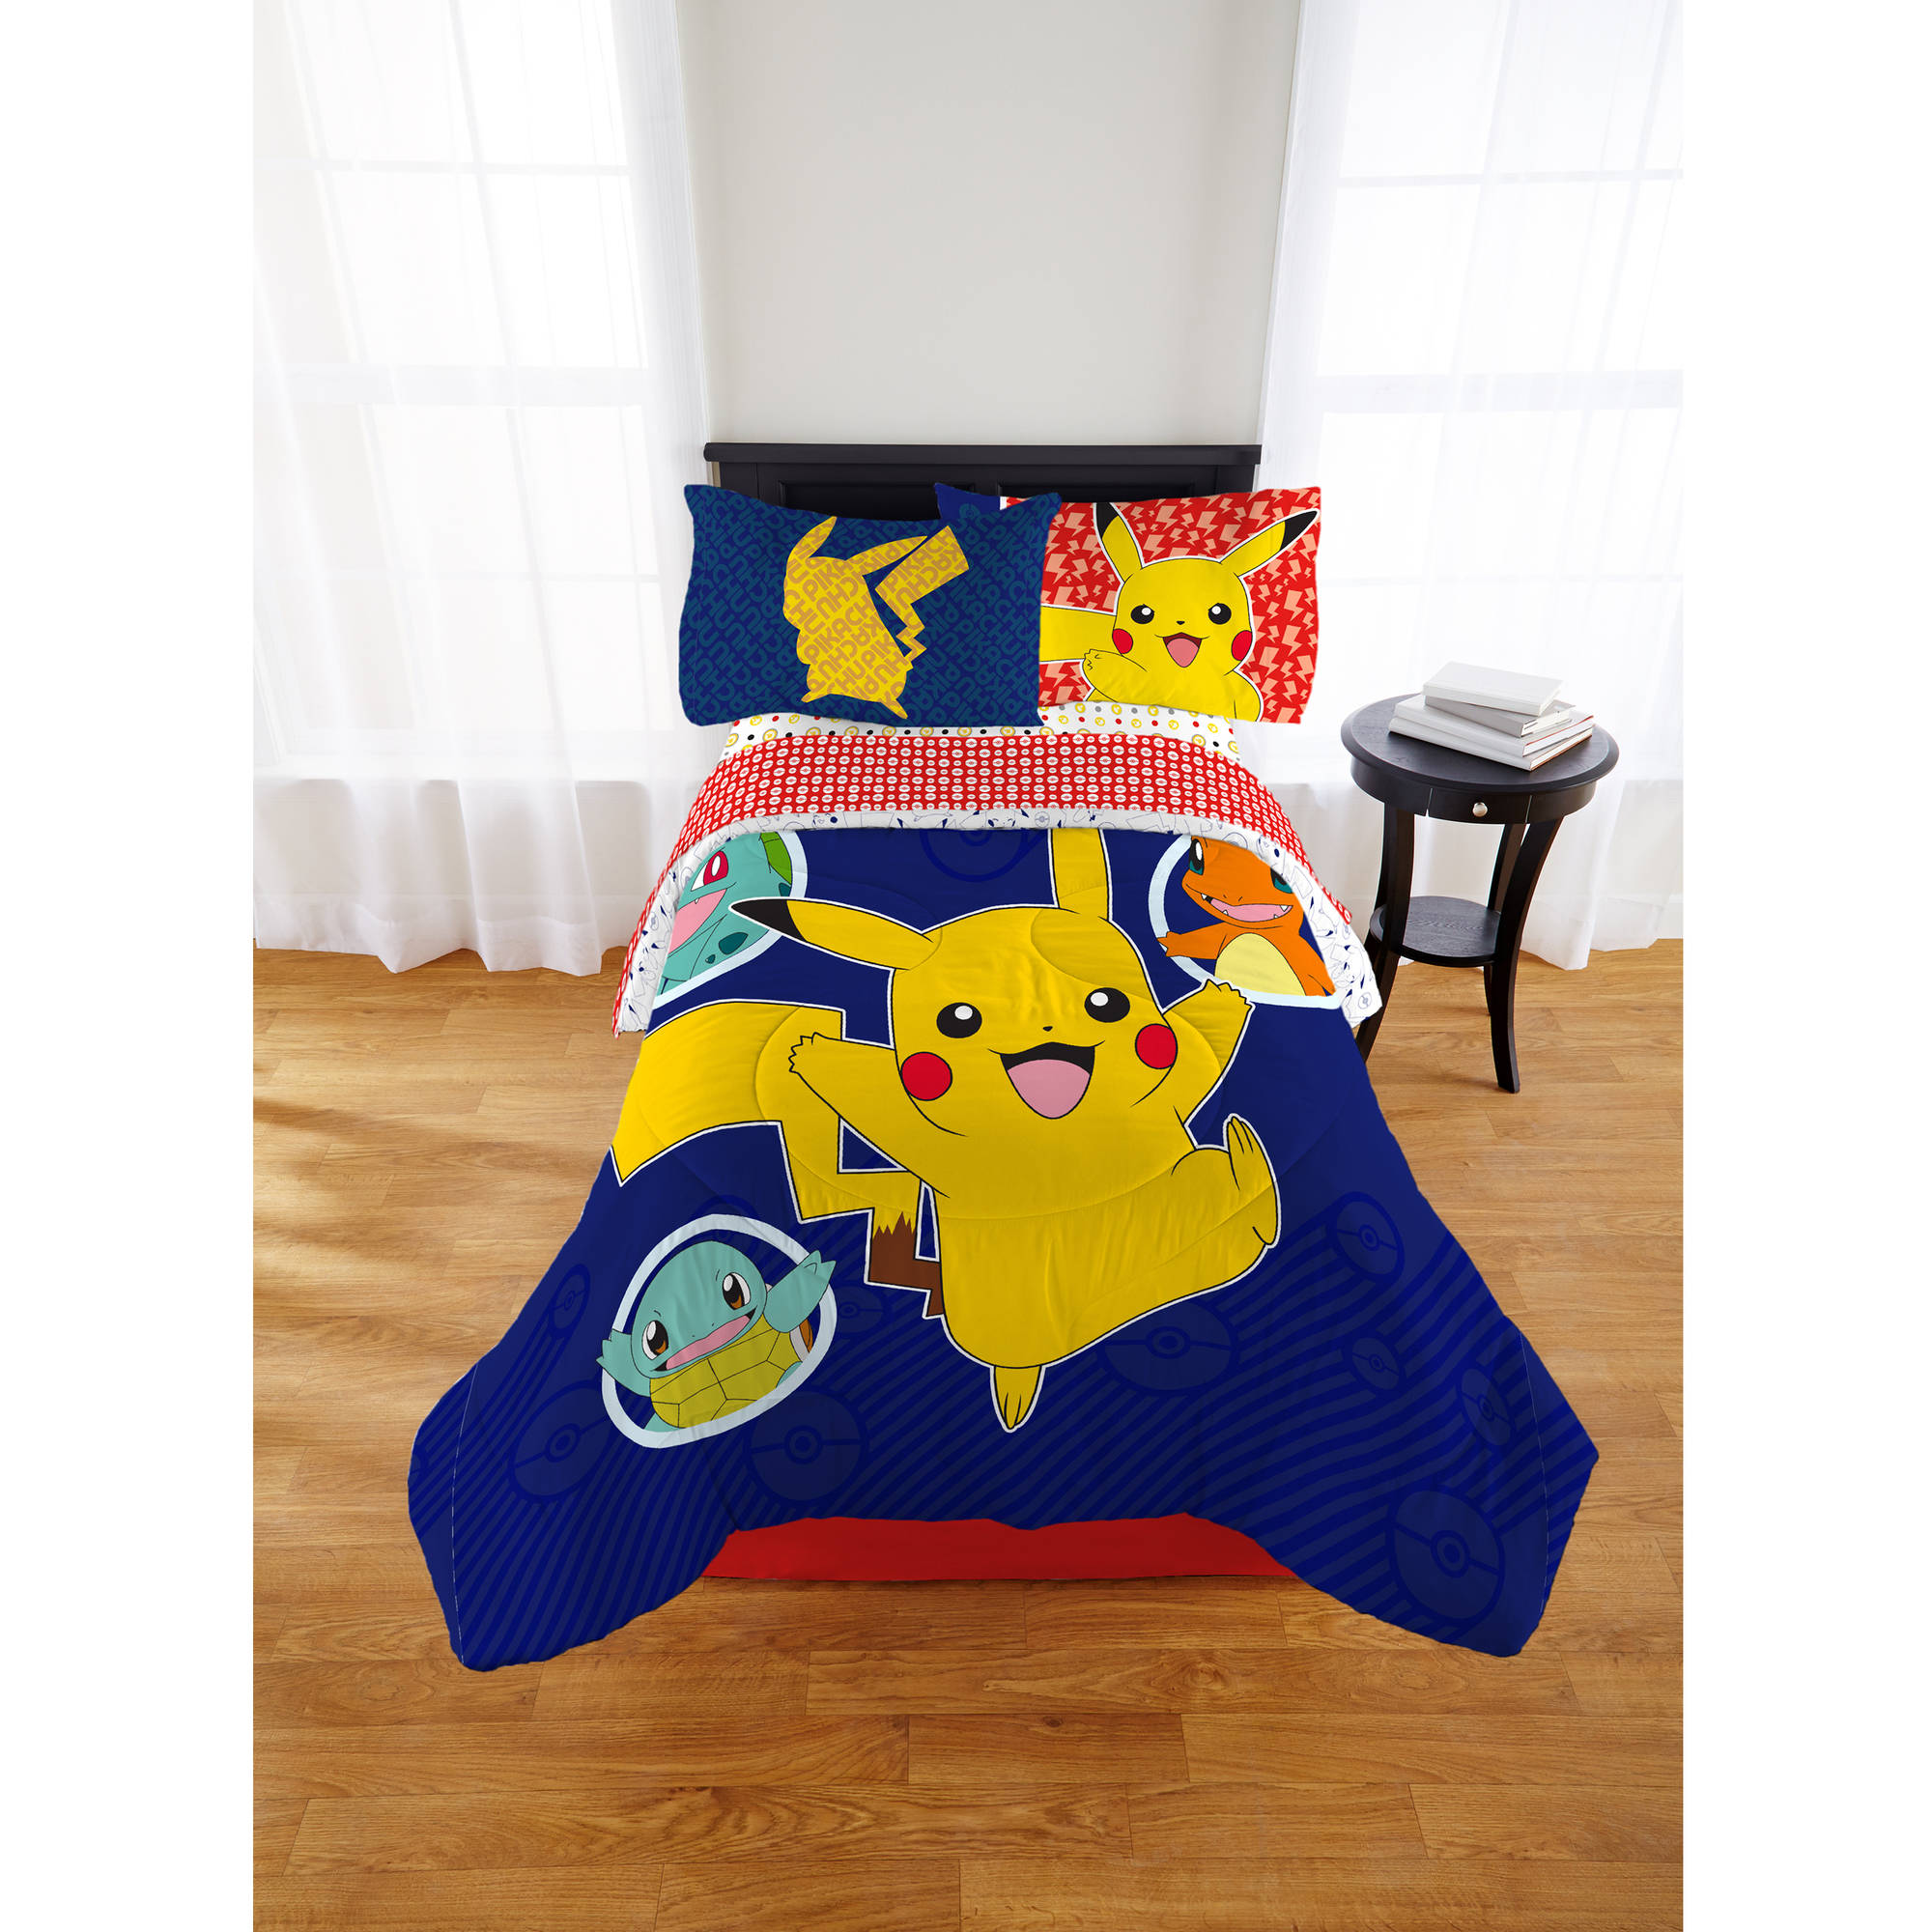 Pokemon Pika Pika Pikachu Kid's Bed in a Bag, Twin, Exclusive